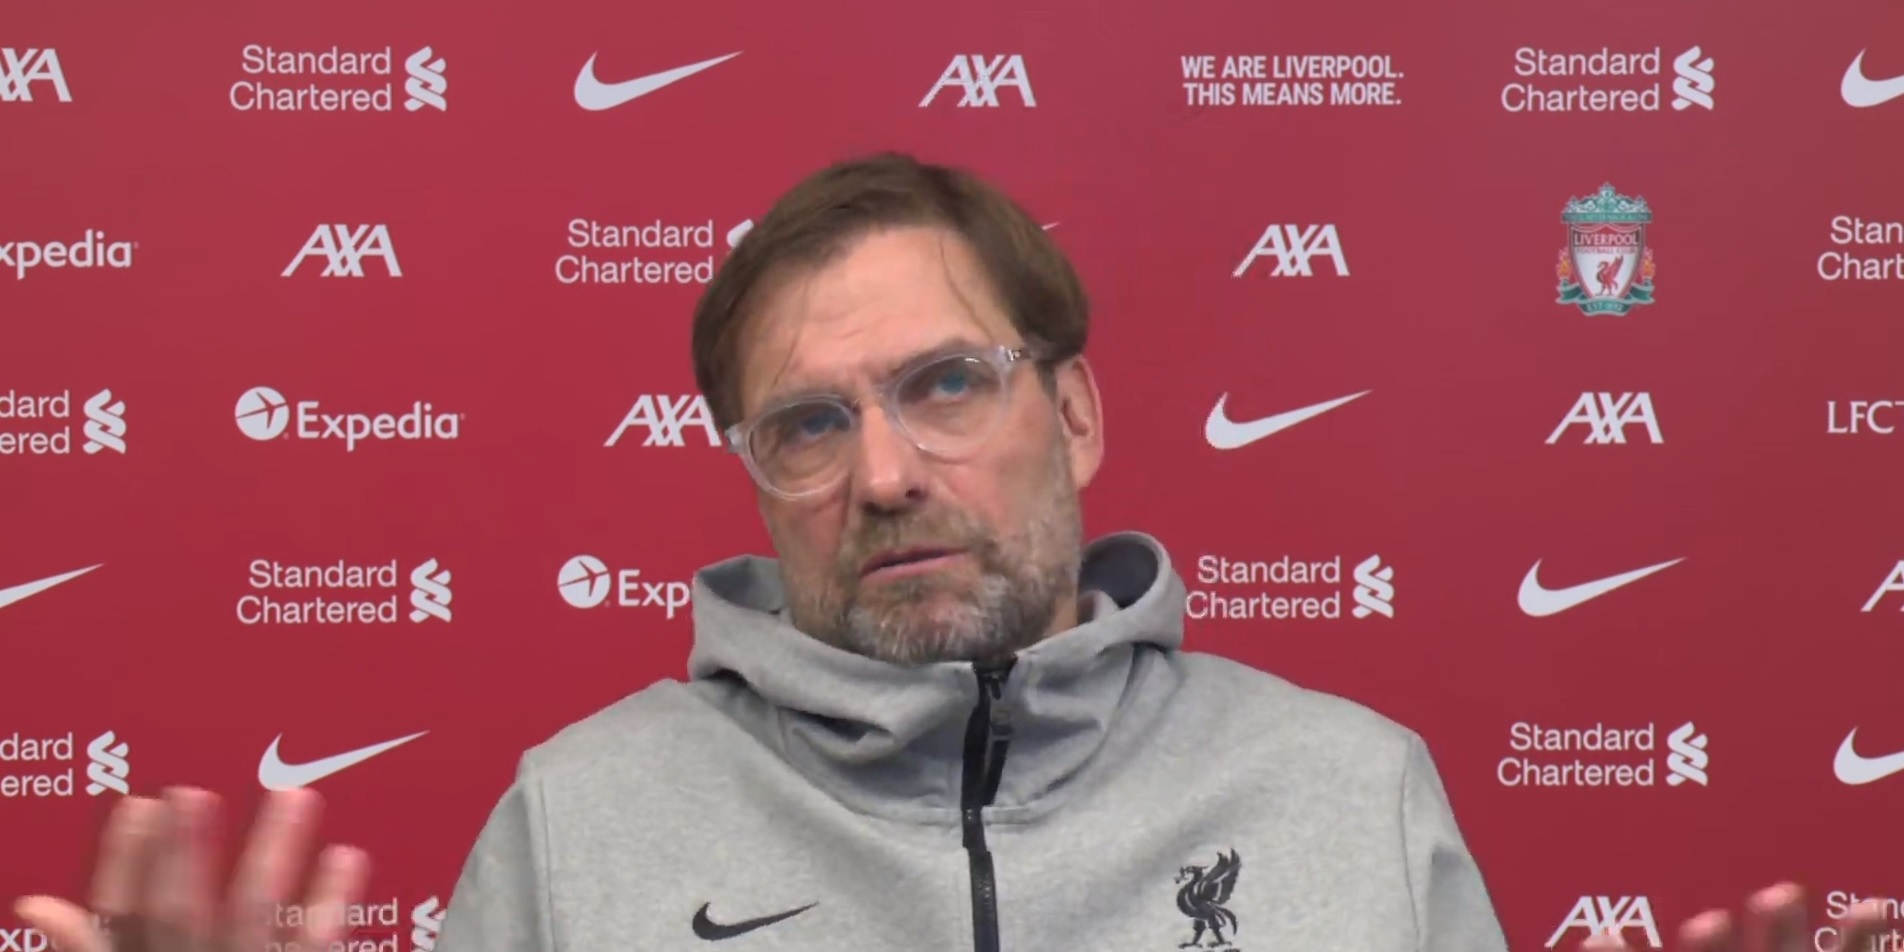 'The players are paid by the clubs – we are first priority' – Klopp bullish on upcoming international break